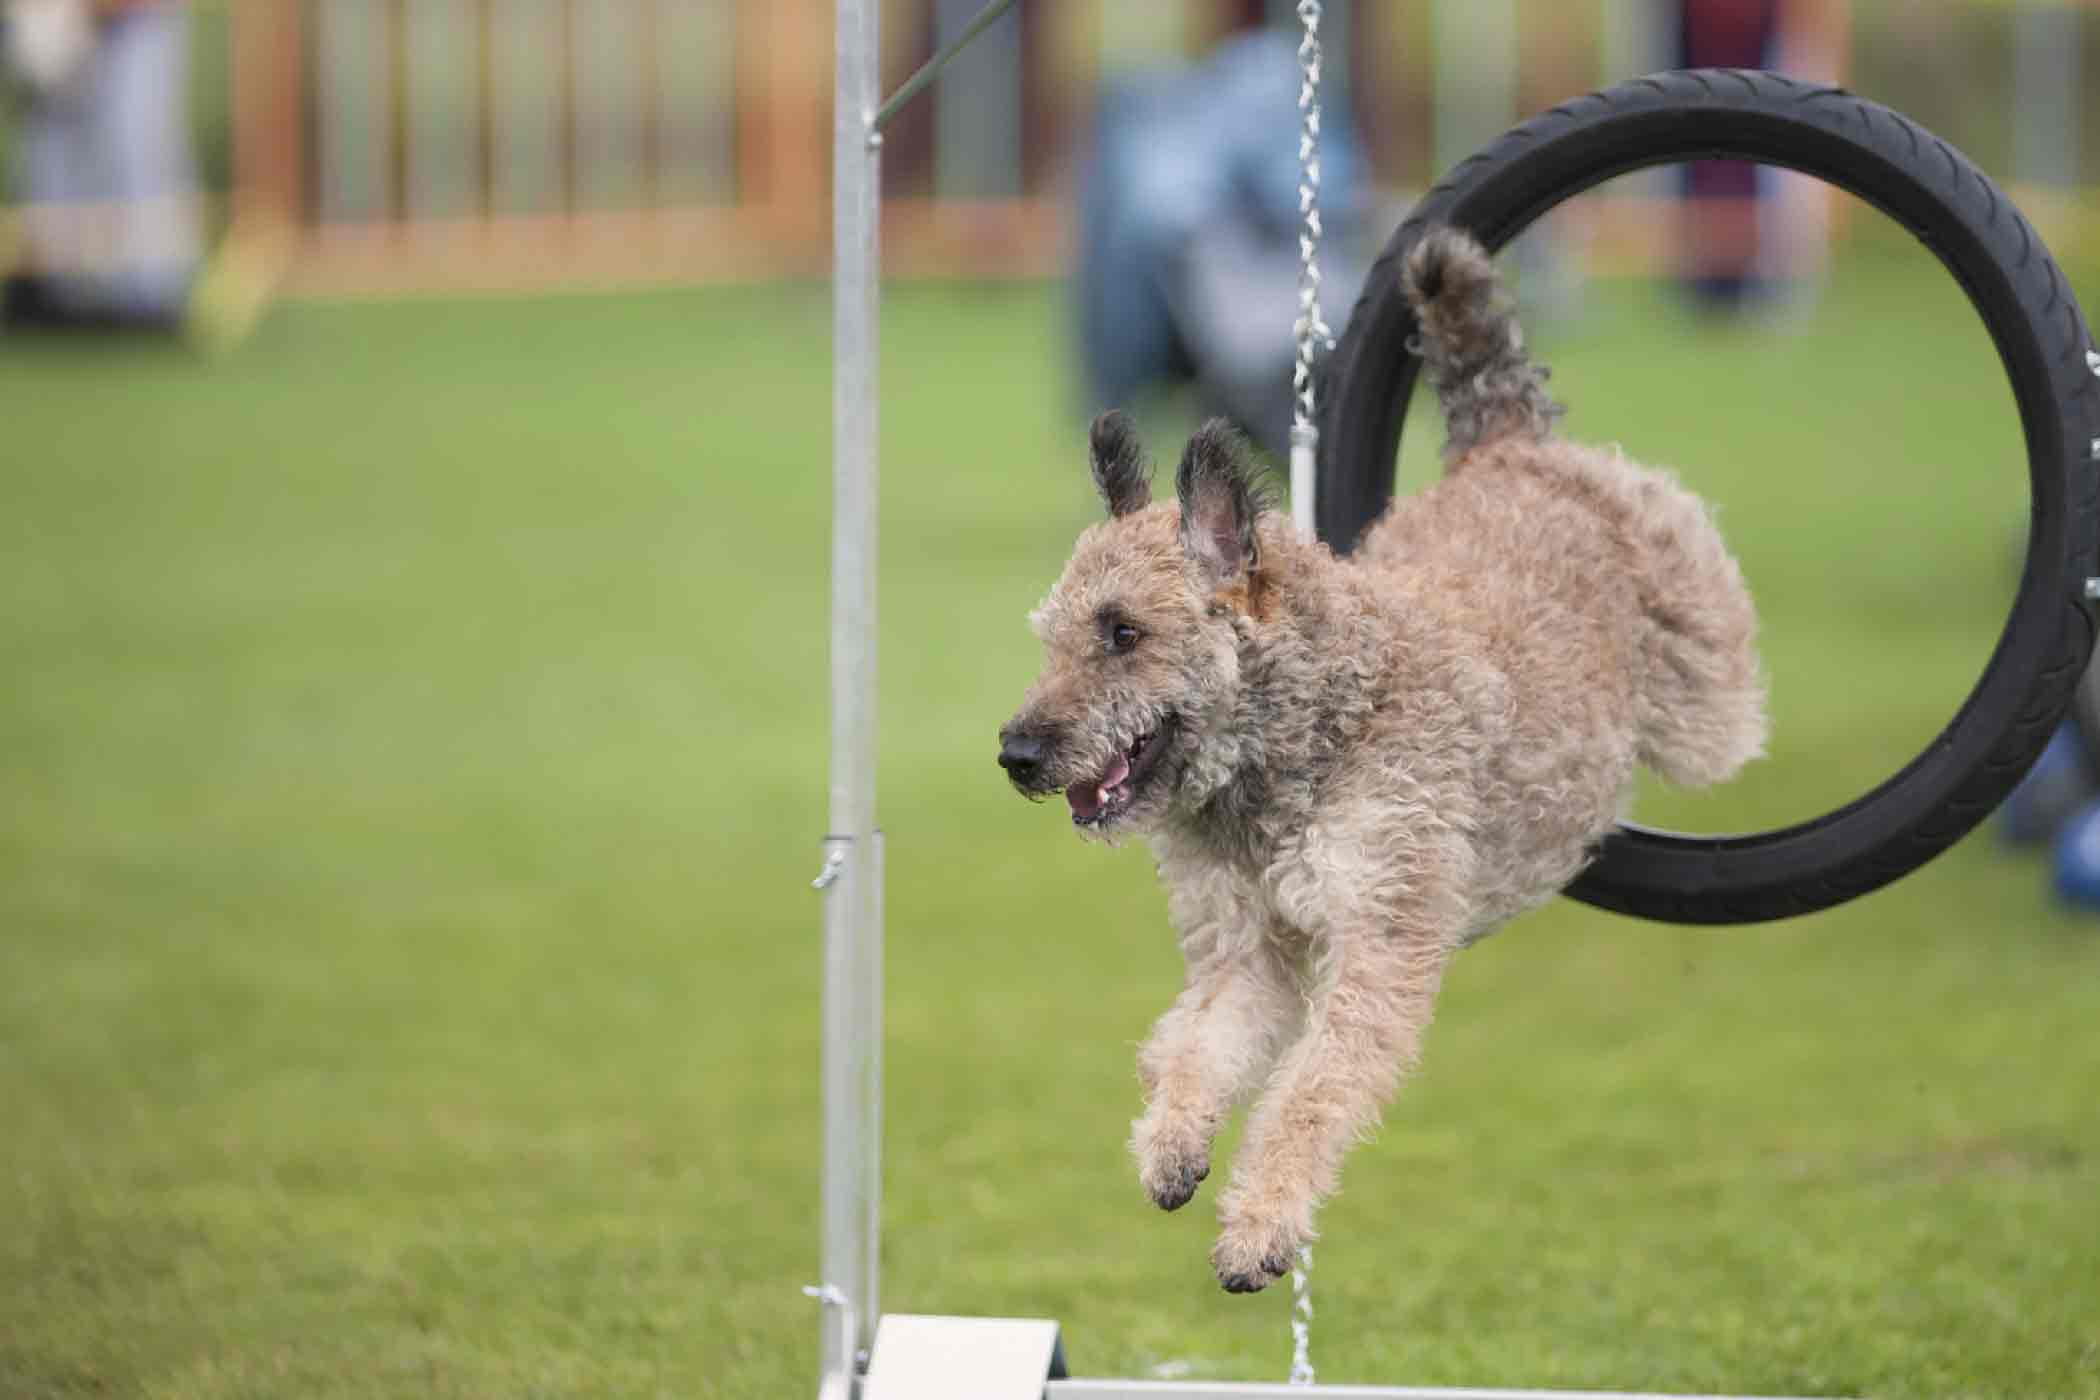 How To Train Your Dog To Jump Through A Hoop